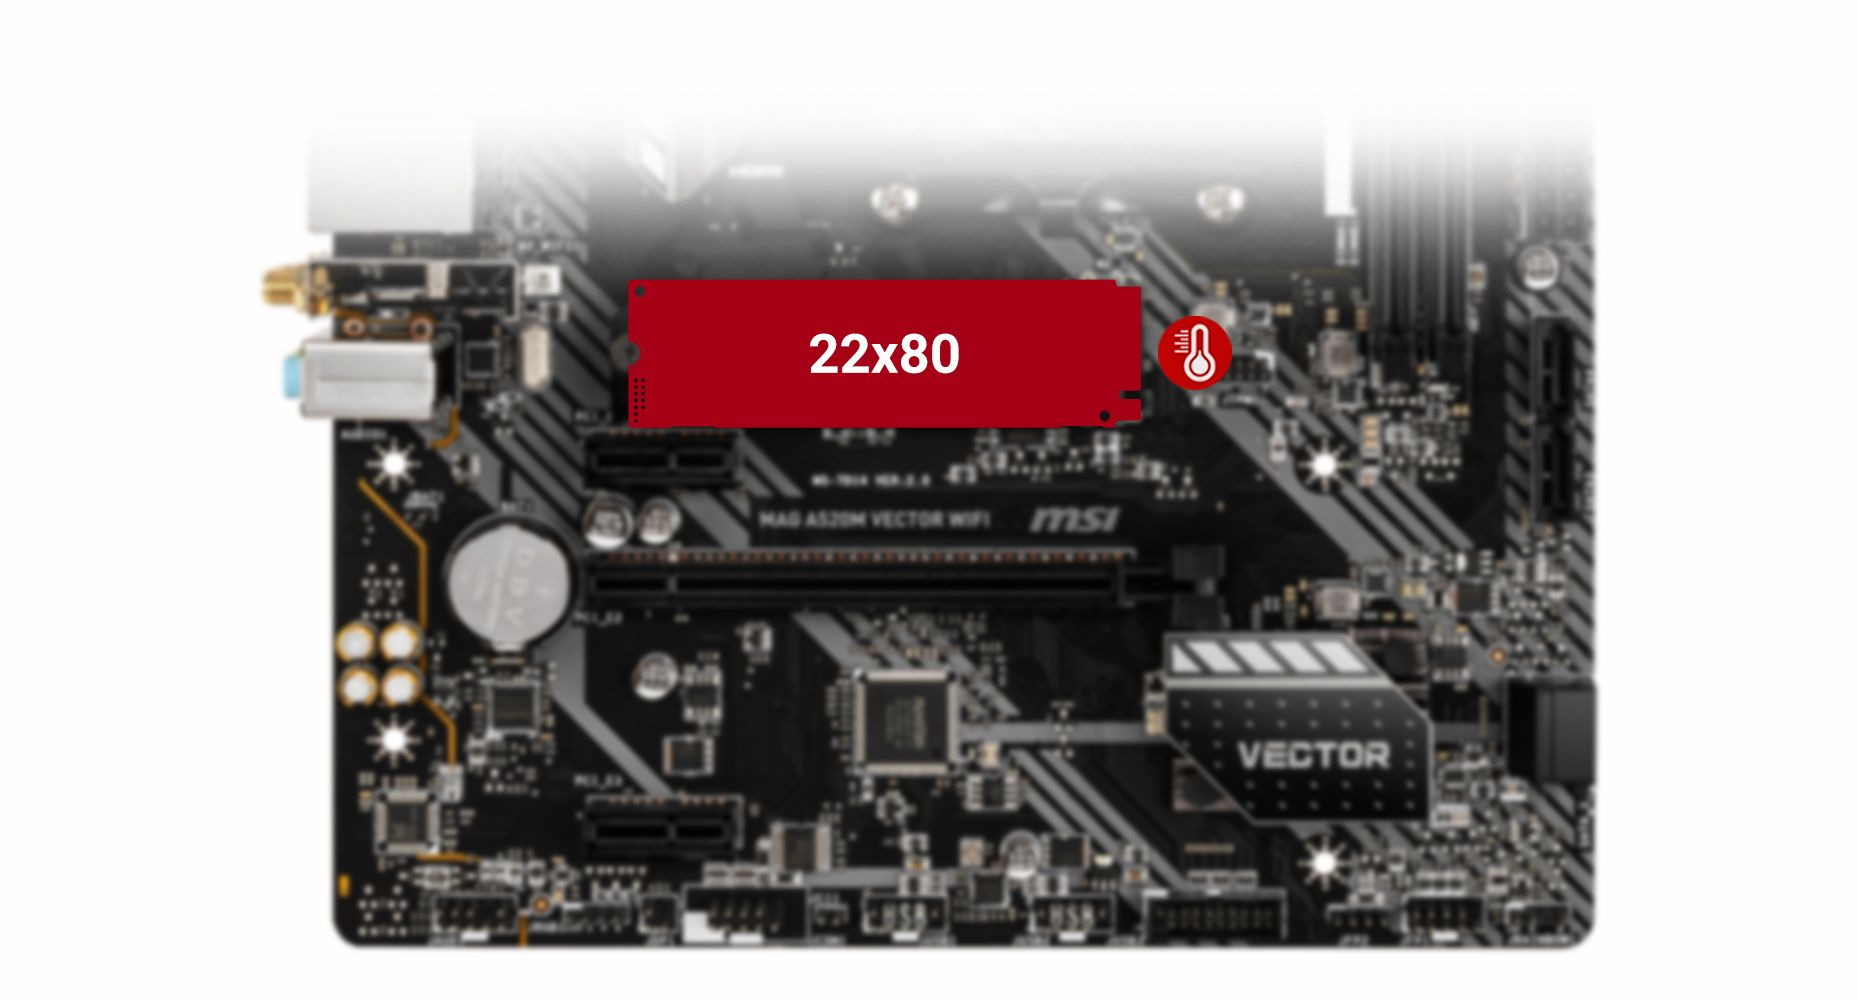 MSI MAG A520M VECTOR WIFI TURBO M.2 WITH M.2 SHIELD FROZR